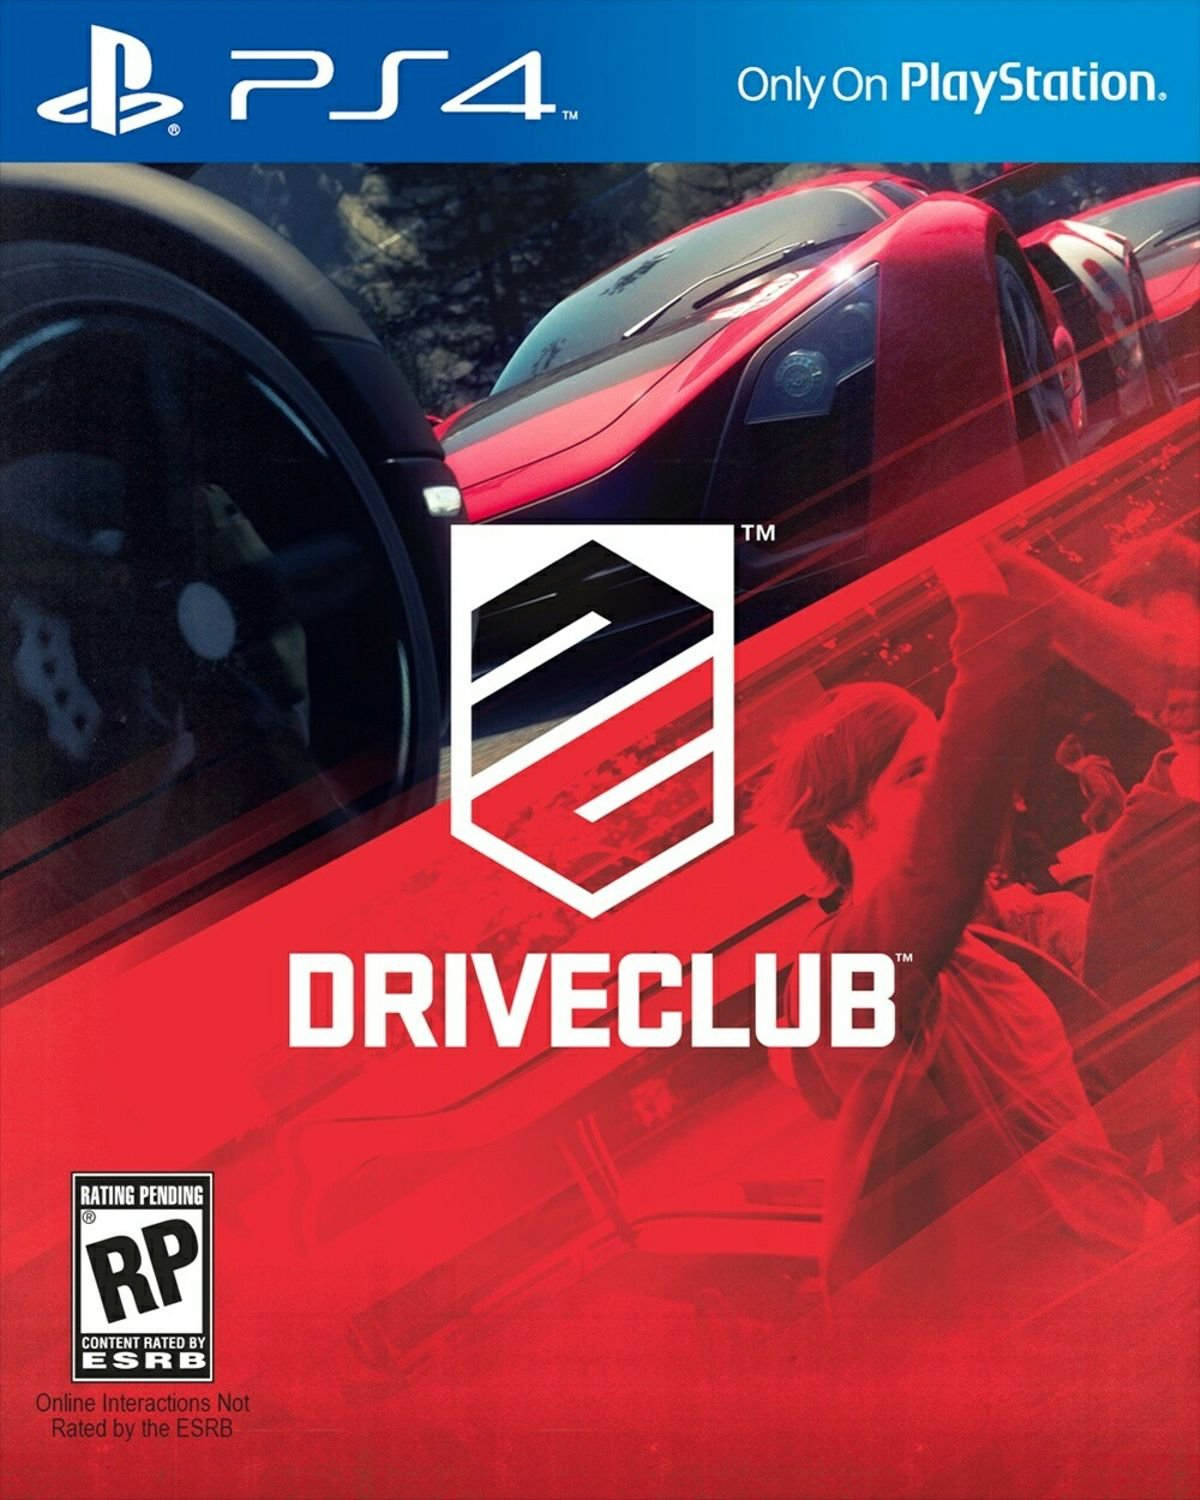 Driveclub [PS4 Exclusive] 5.05 / 6.72 / 7.02 [EUR] (2014) [Русский] (v1.28)